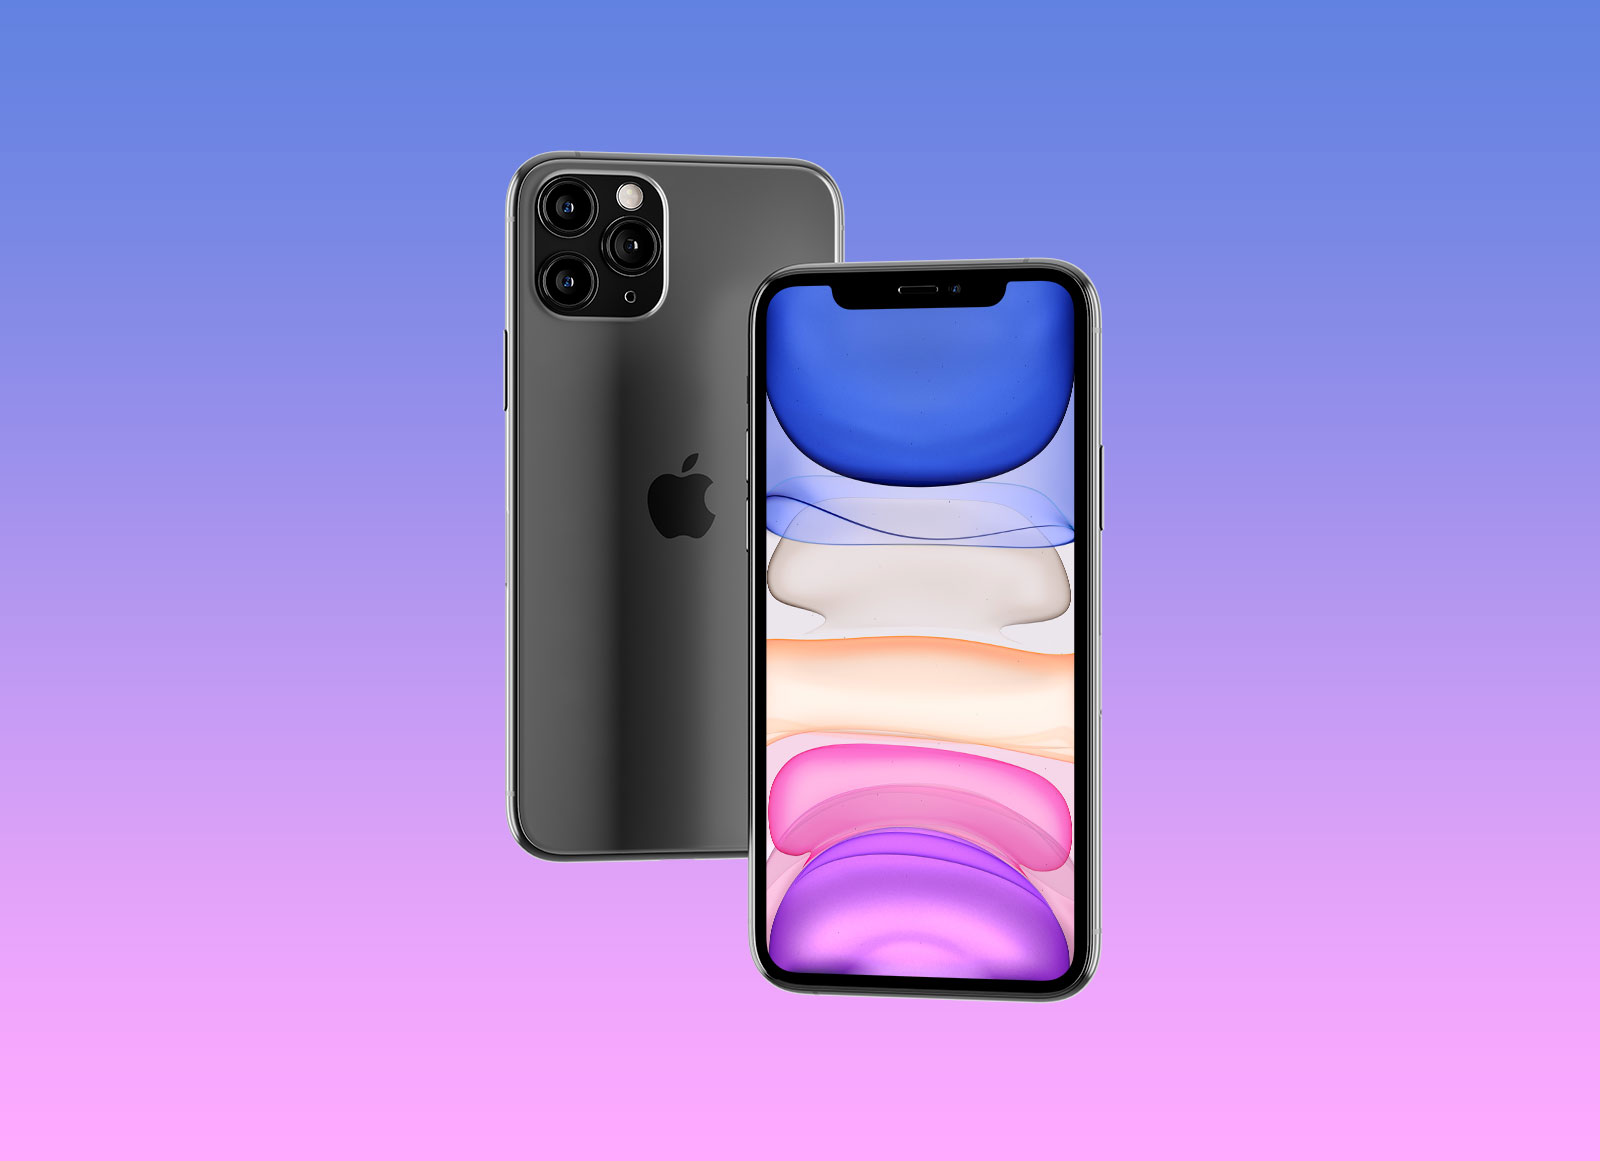 Free-HQ-Floating-Apple-iPhone-11-Pro-Max-Mockup-PSD